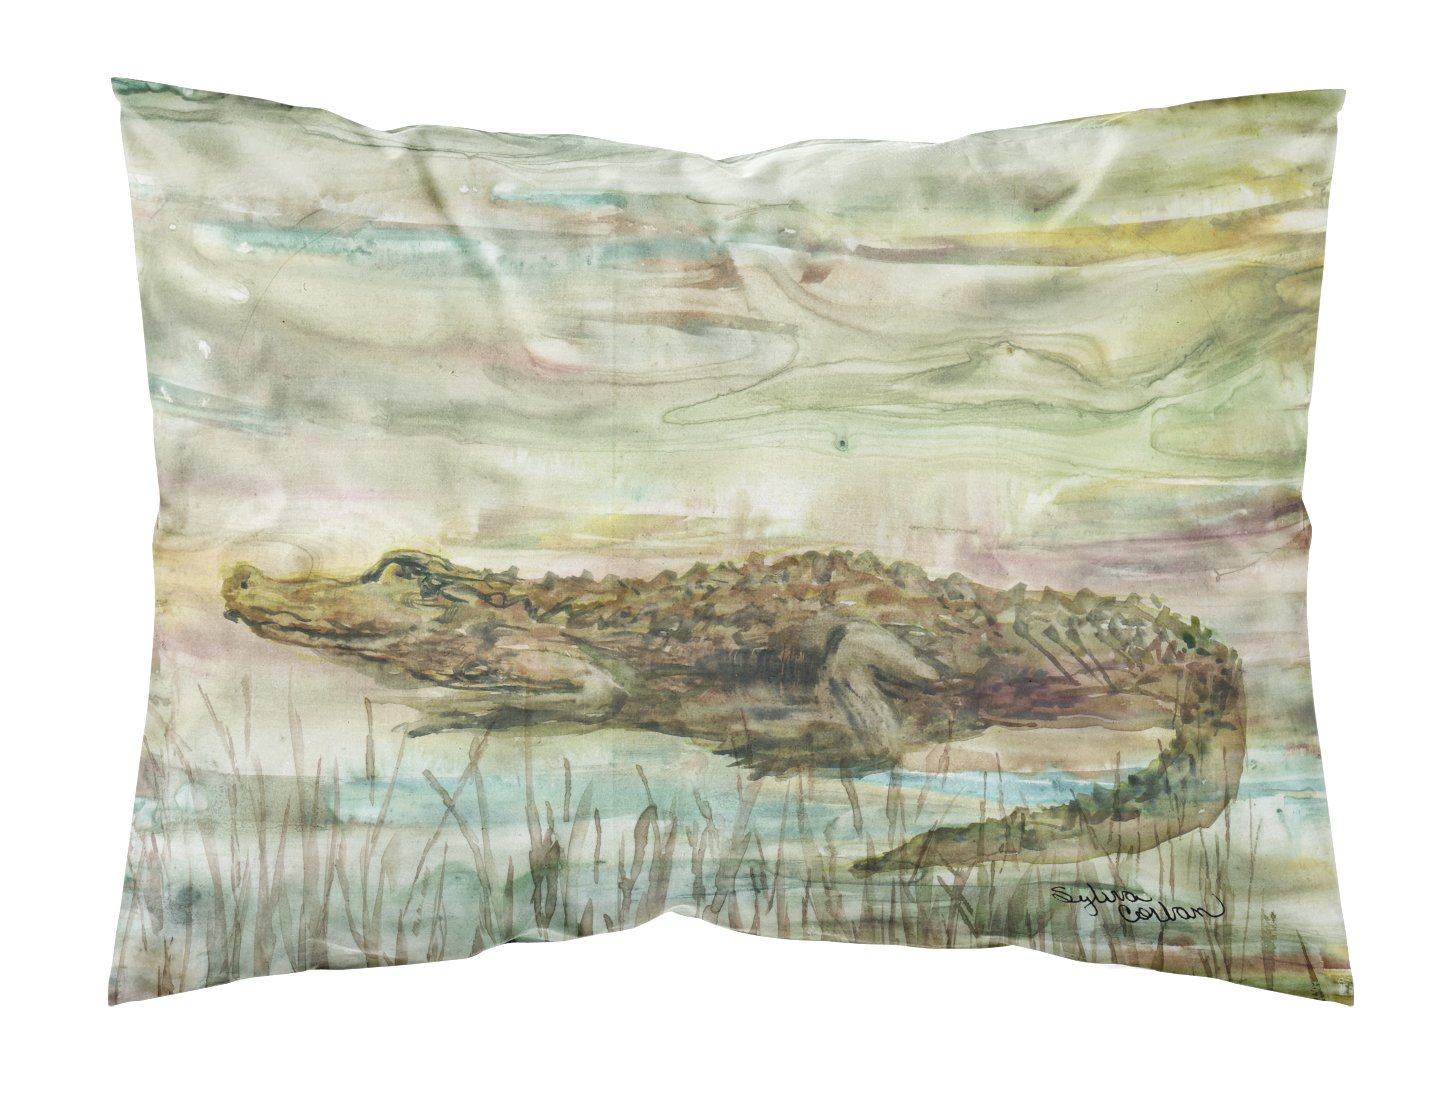 Alligator Sunset Fabric Standard Pillowcase SC2016PILLOWCASE by Caroline's Treasures